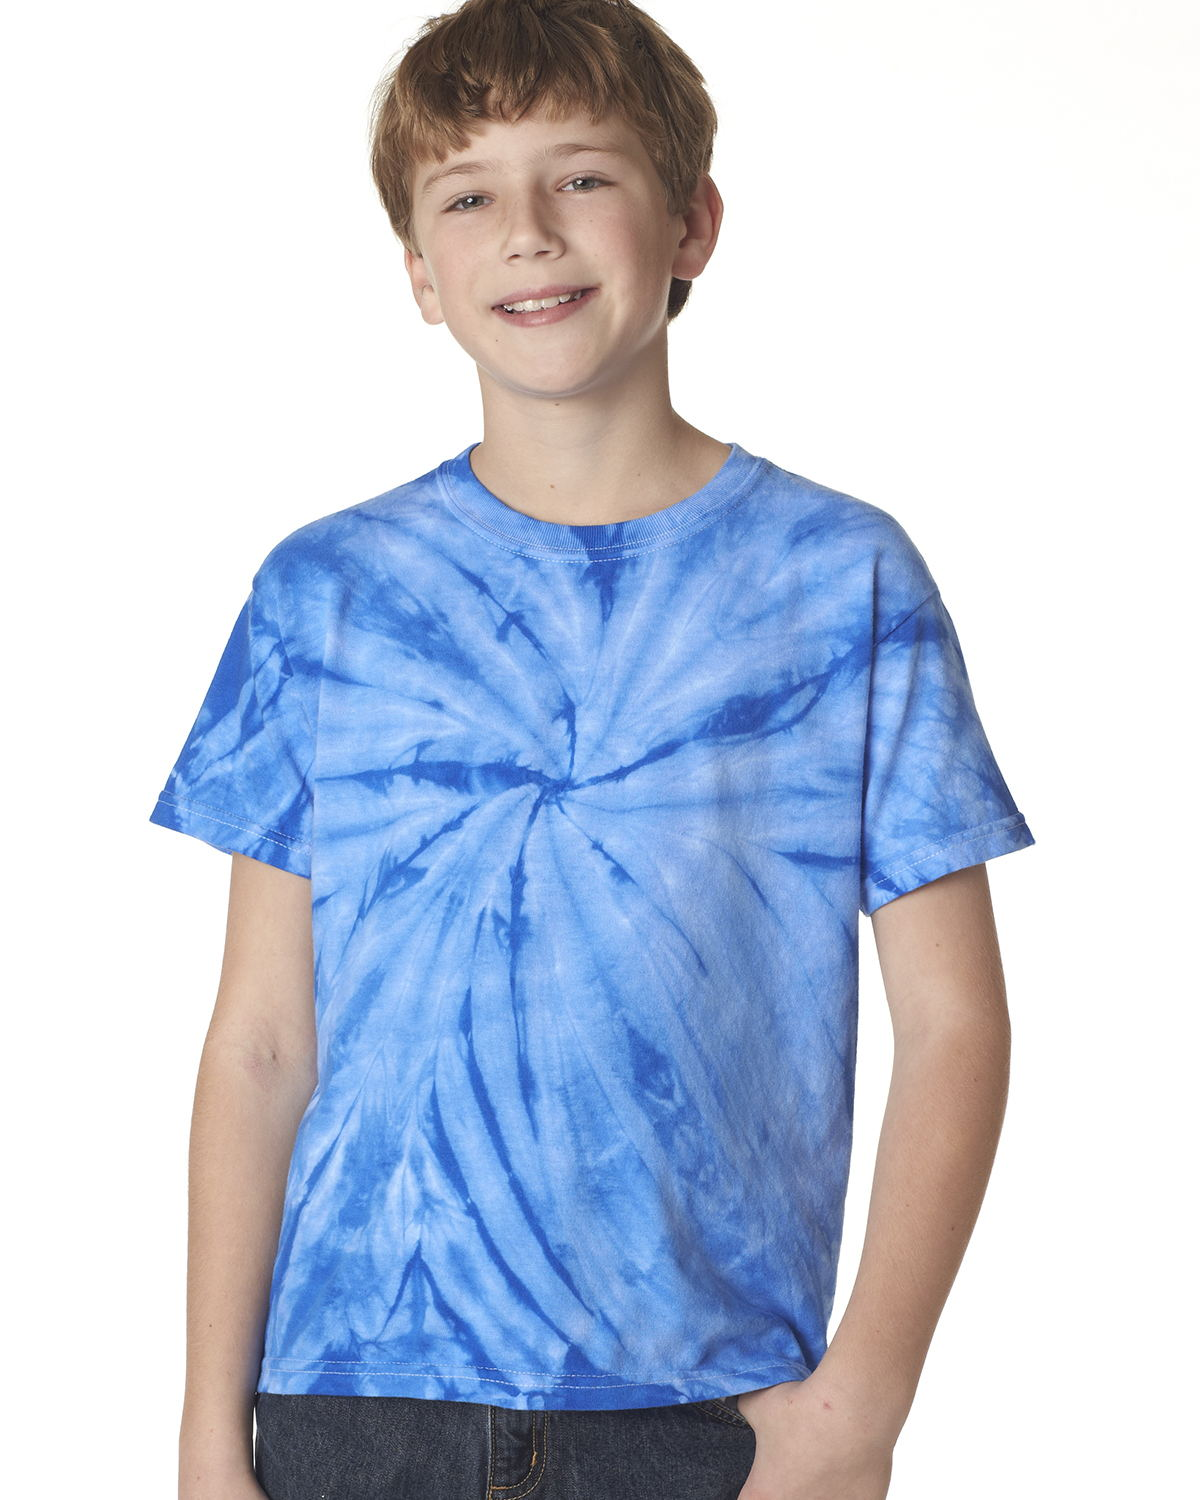 Tie-Dyed 20BCY - Youth Cyclone Vat-Dyed Pinwheel Short ...